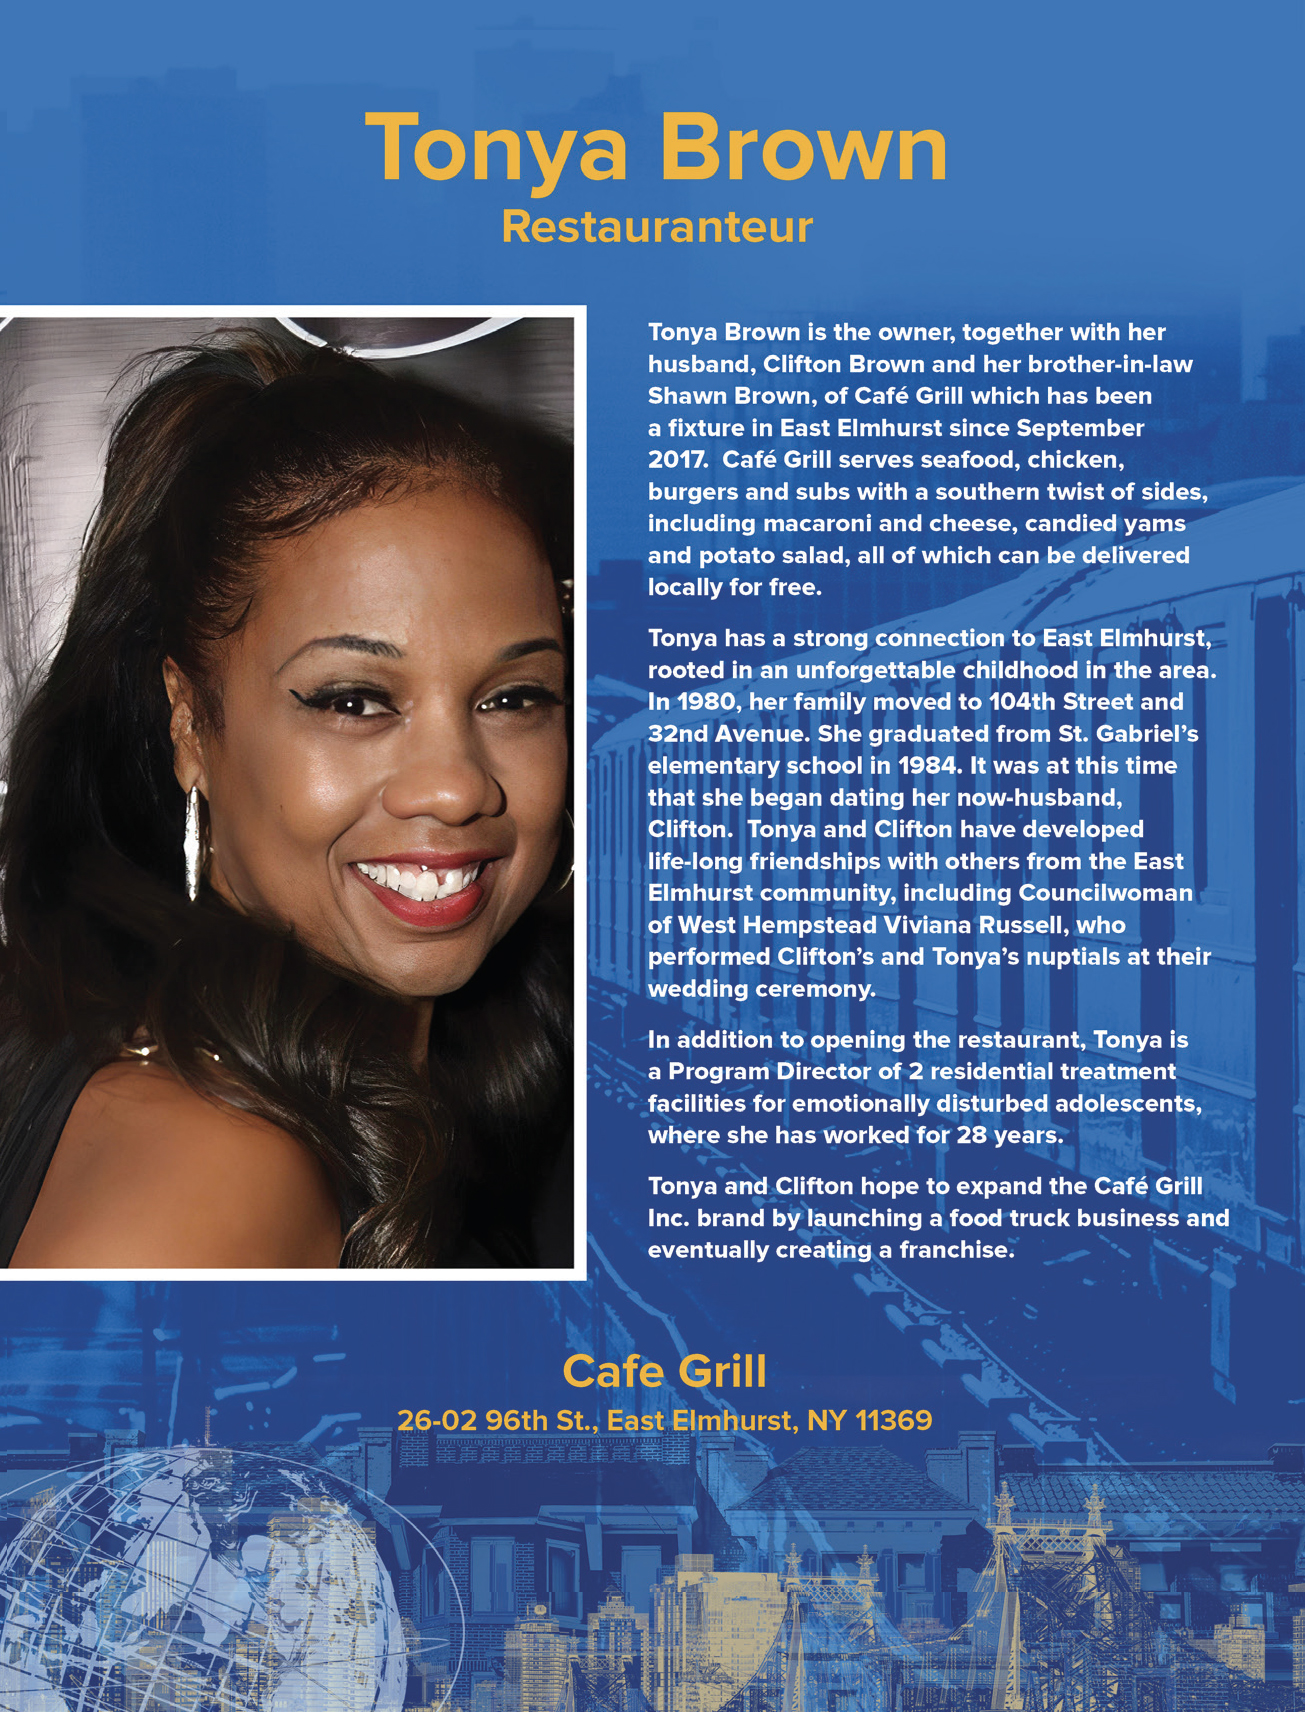 Toyna Brown, Restauranteur and co-owner of Café Grill